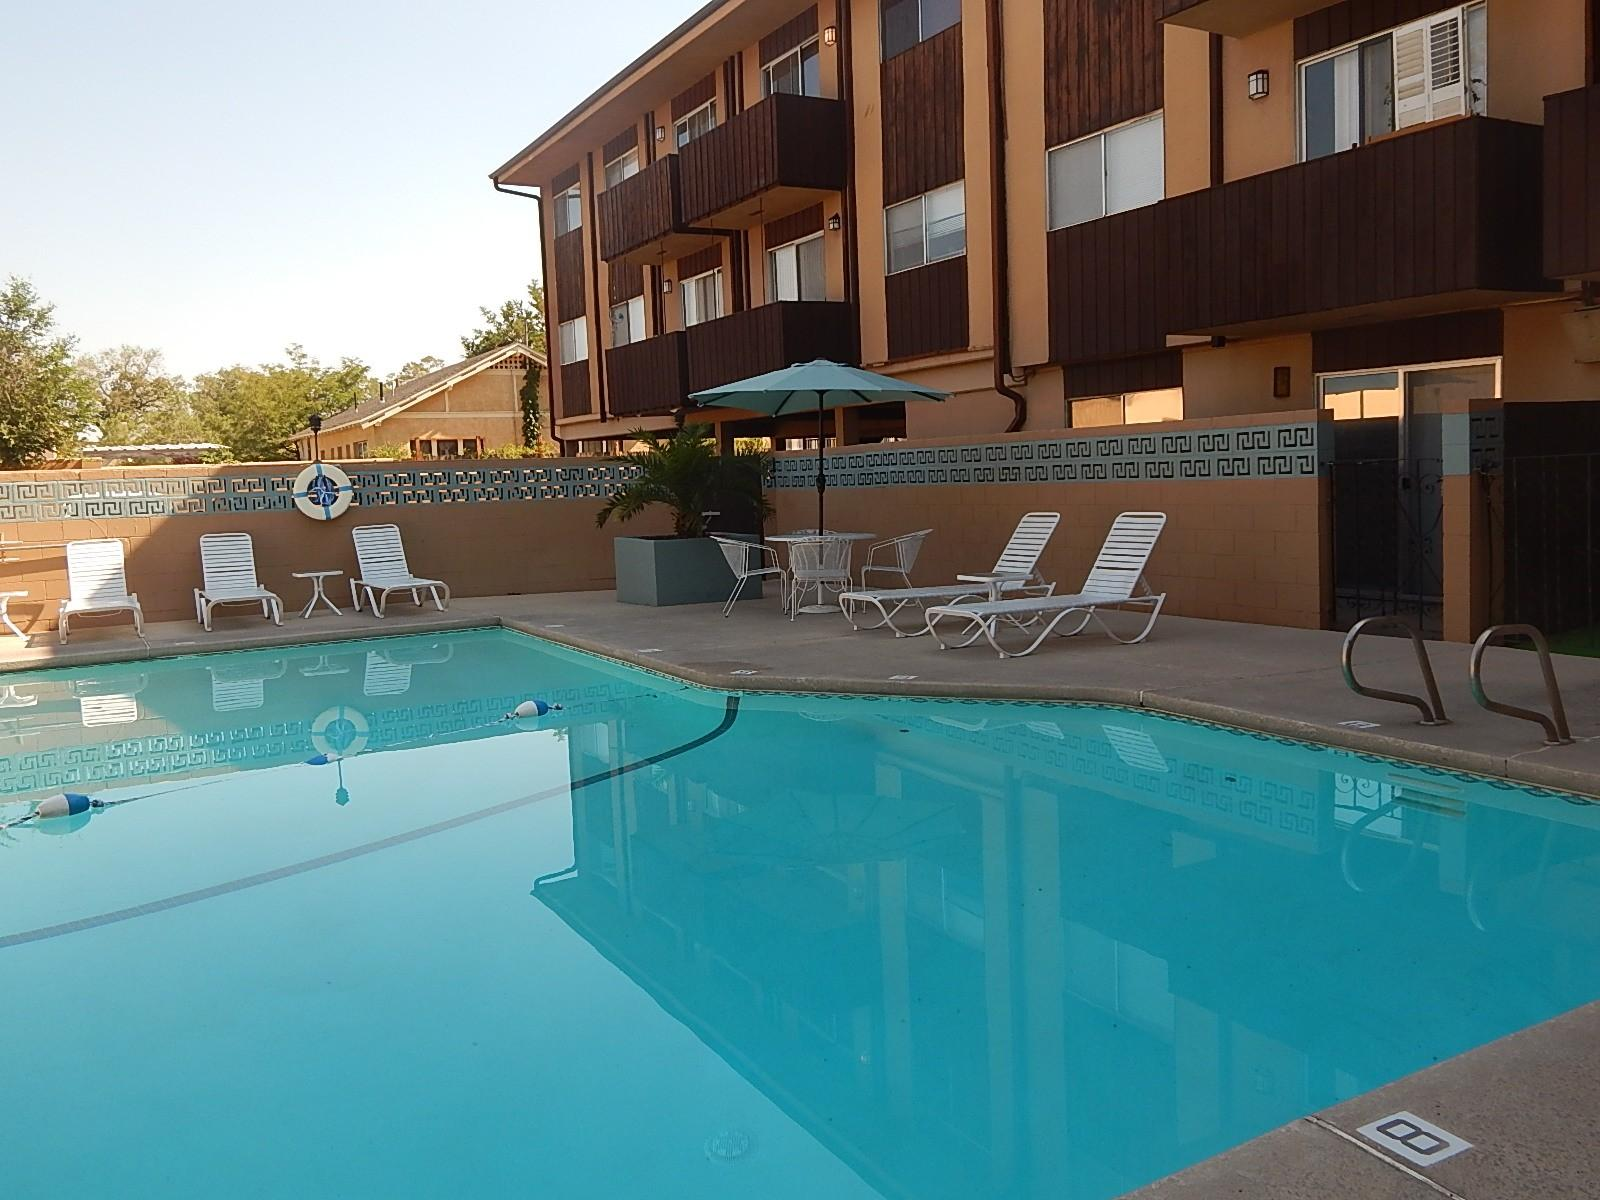 Nine O Nine Apts Apartments Albuquerque Nm Walk Score Iphone Wallpapers Free Beautiful  HD Wallpapers, Images Over 1000+ [getprihce.gq]